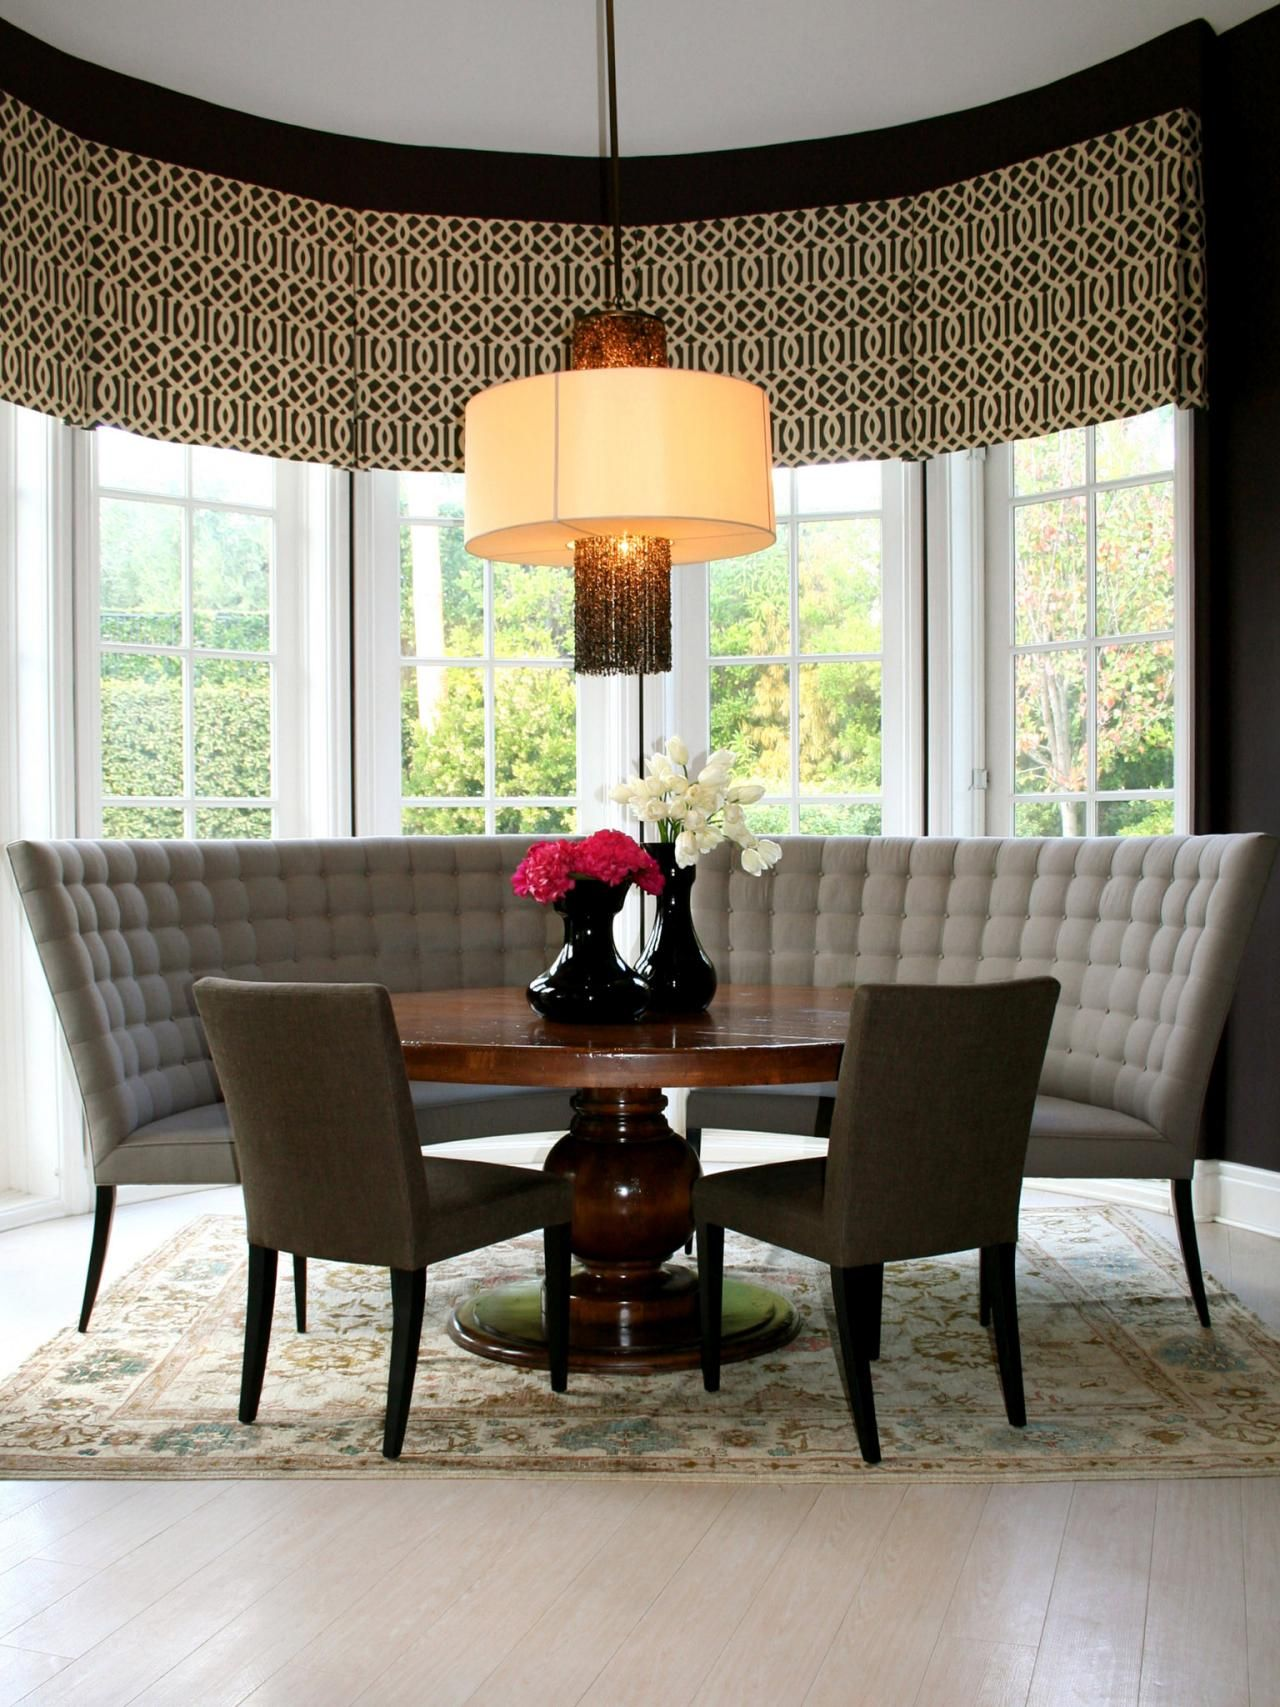 Charming Breakfast Nook With Settee Settee Dining Dining Room Bench Elegant Living Room